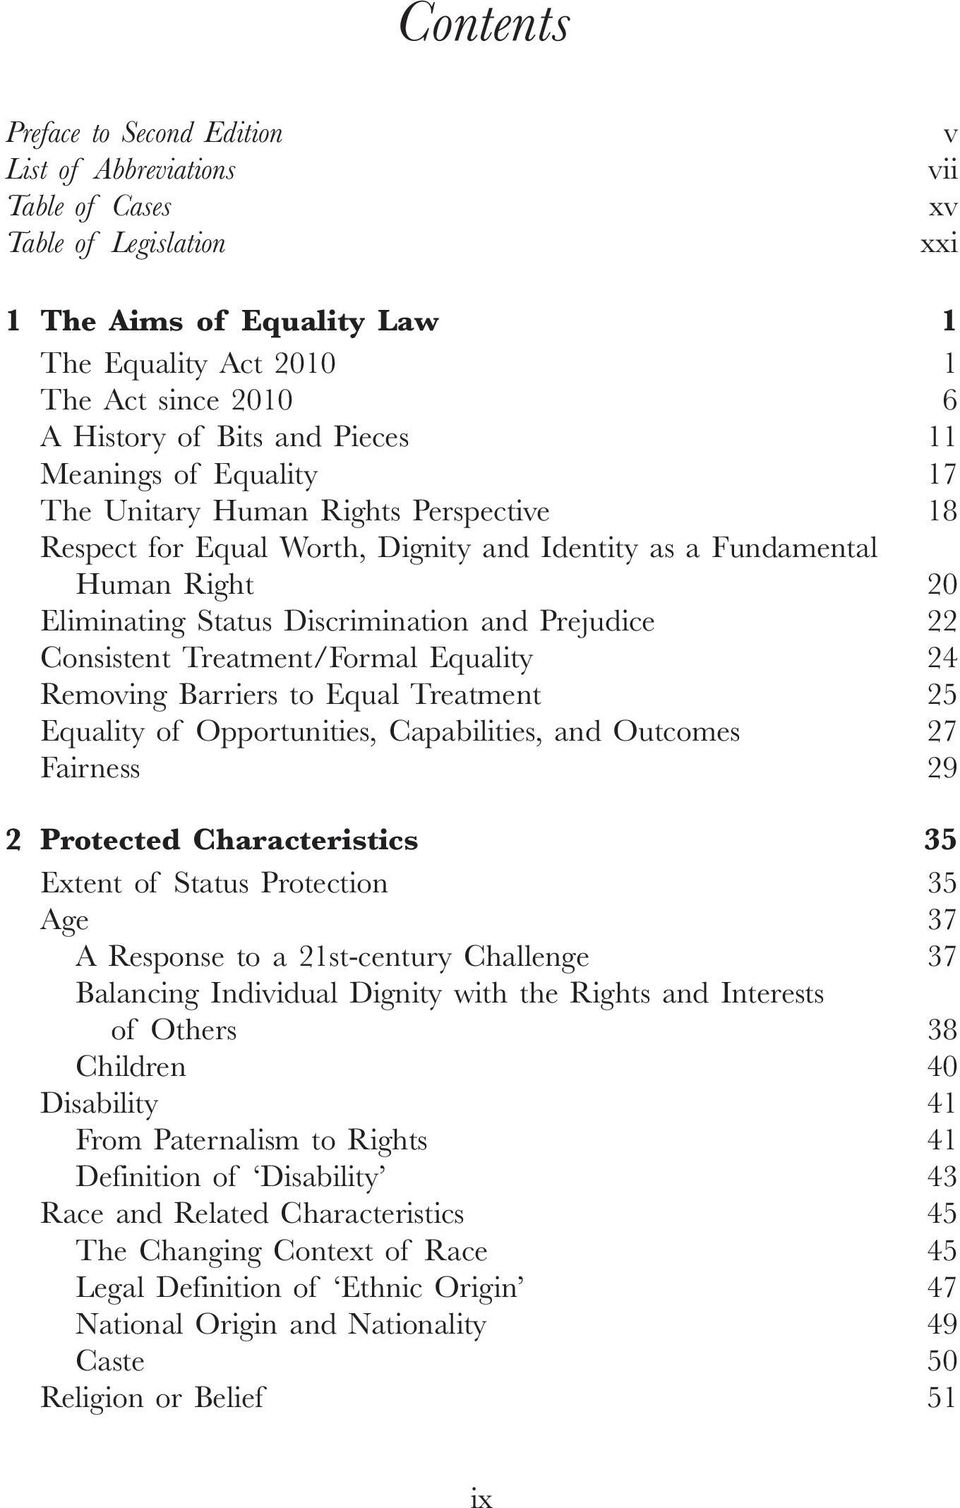 Prejudice 22 Consistent Treatment/Formal Equality 24 Removing Barriers to Equal Treatment 25 Equality of Opportunities, Capabilities, and Outcomes 27 Fairness 29 2 Protected Characteristics 35 Extent